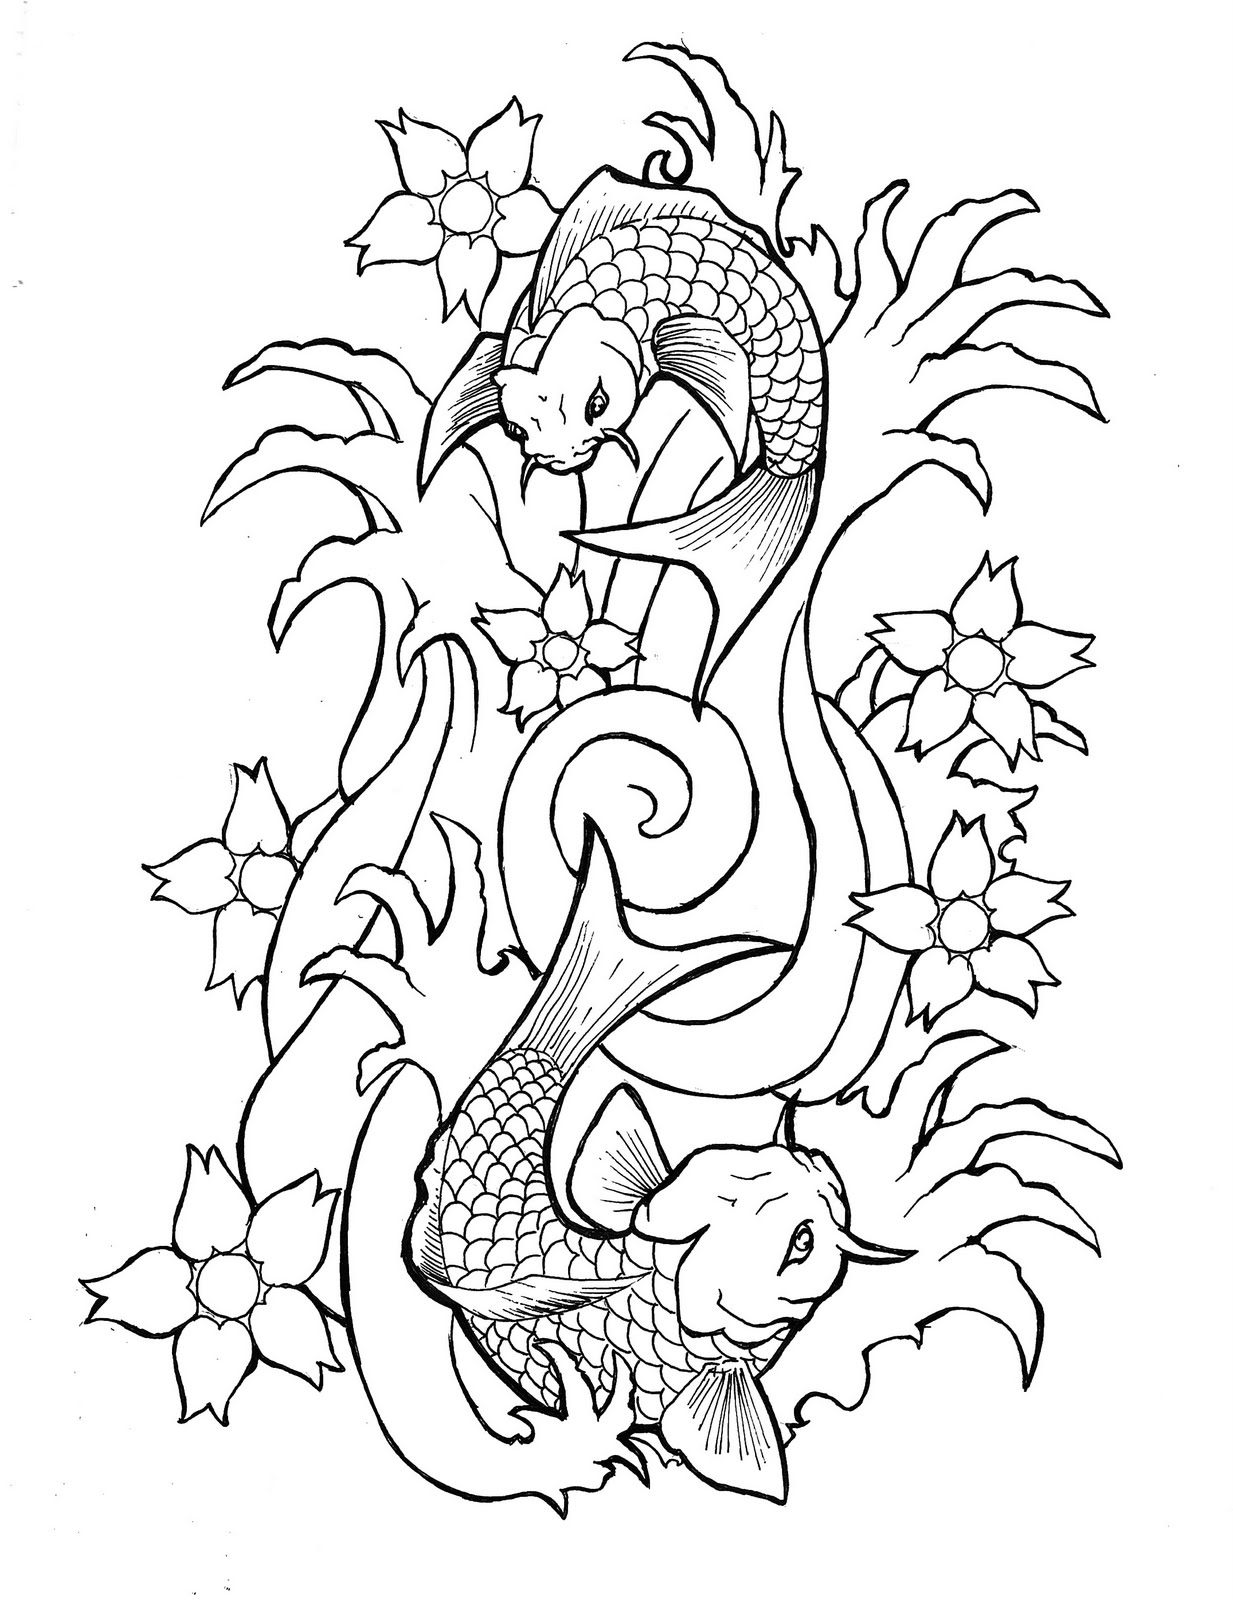 outline tattoo Excellent tattoo studio in northridge, ca 91324  thats a ok black outline ink still have not found a great one anyone know a great one  ©2018 mike devries .